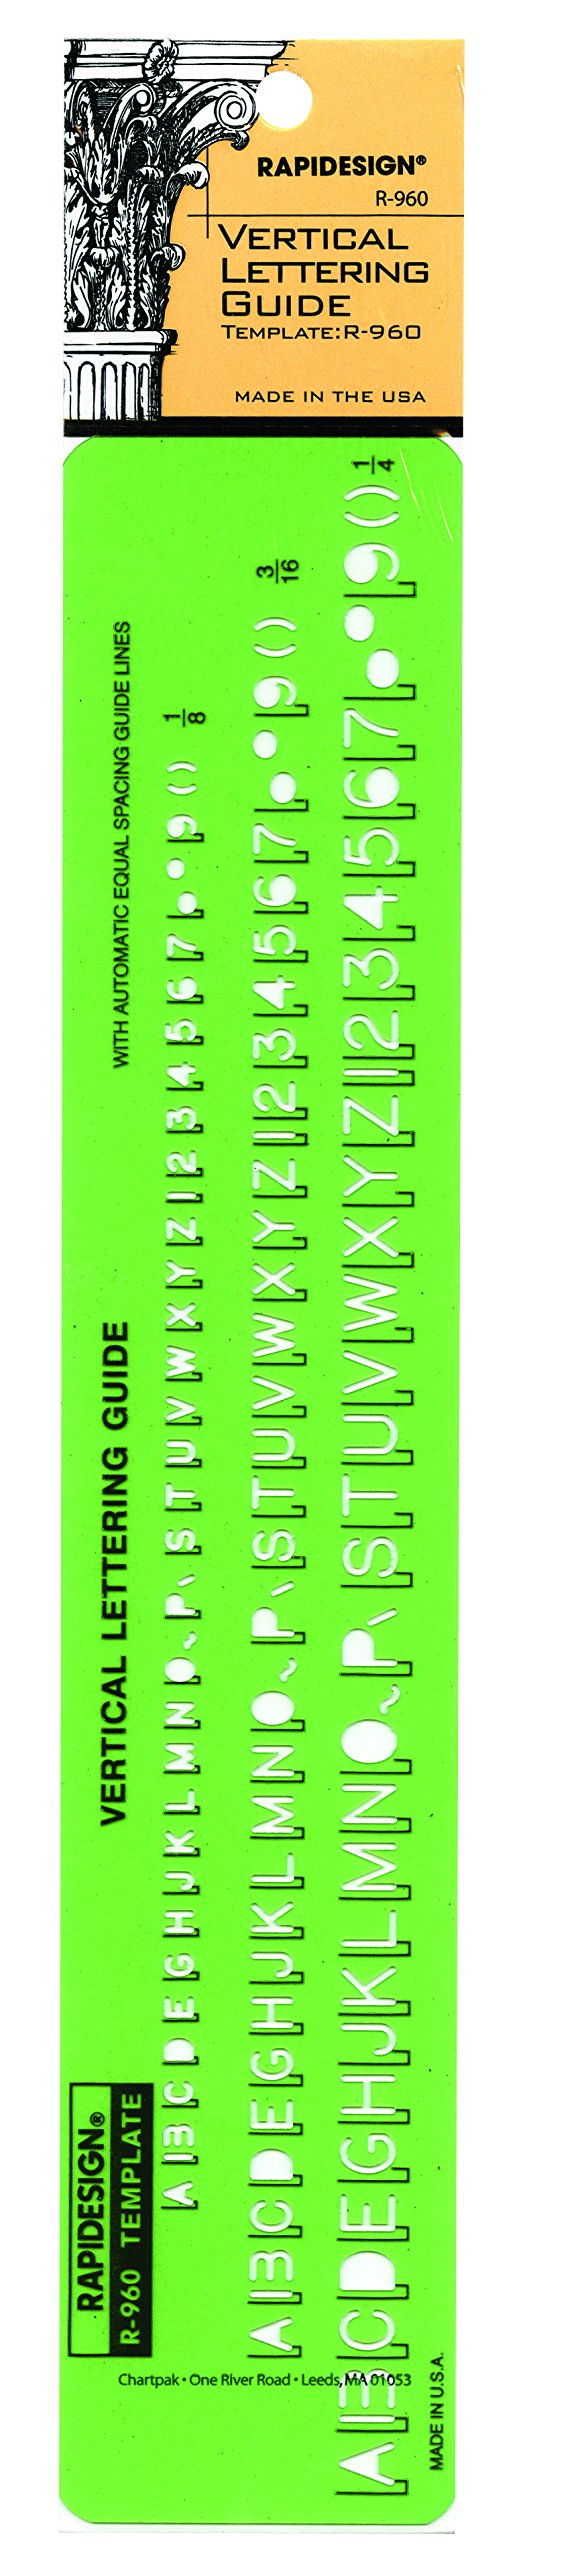 Rapidesign Gothic Vertical Letter and Number Template - 1/8, 3/16, 1/4 Inch Sizes, 1 Each (R960)